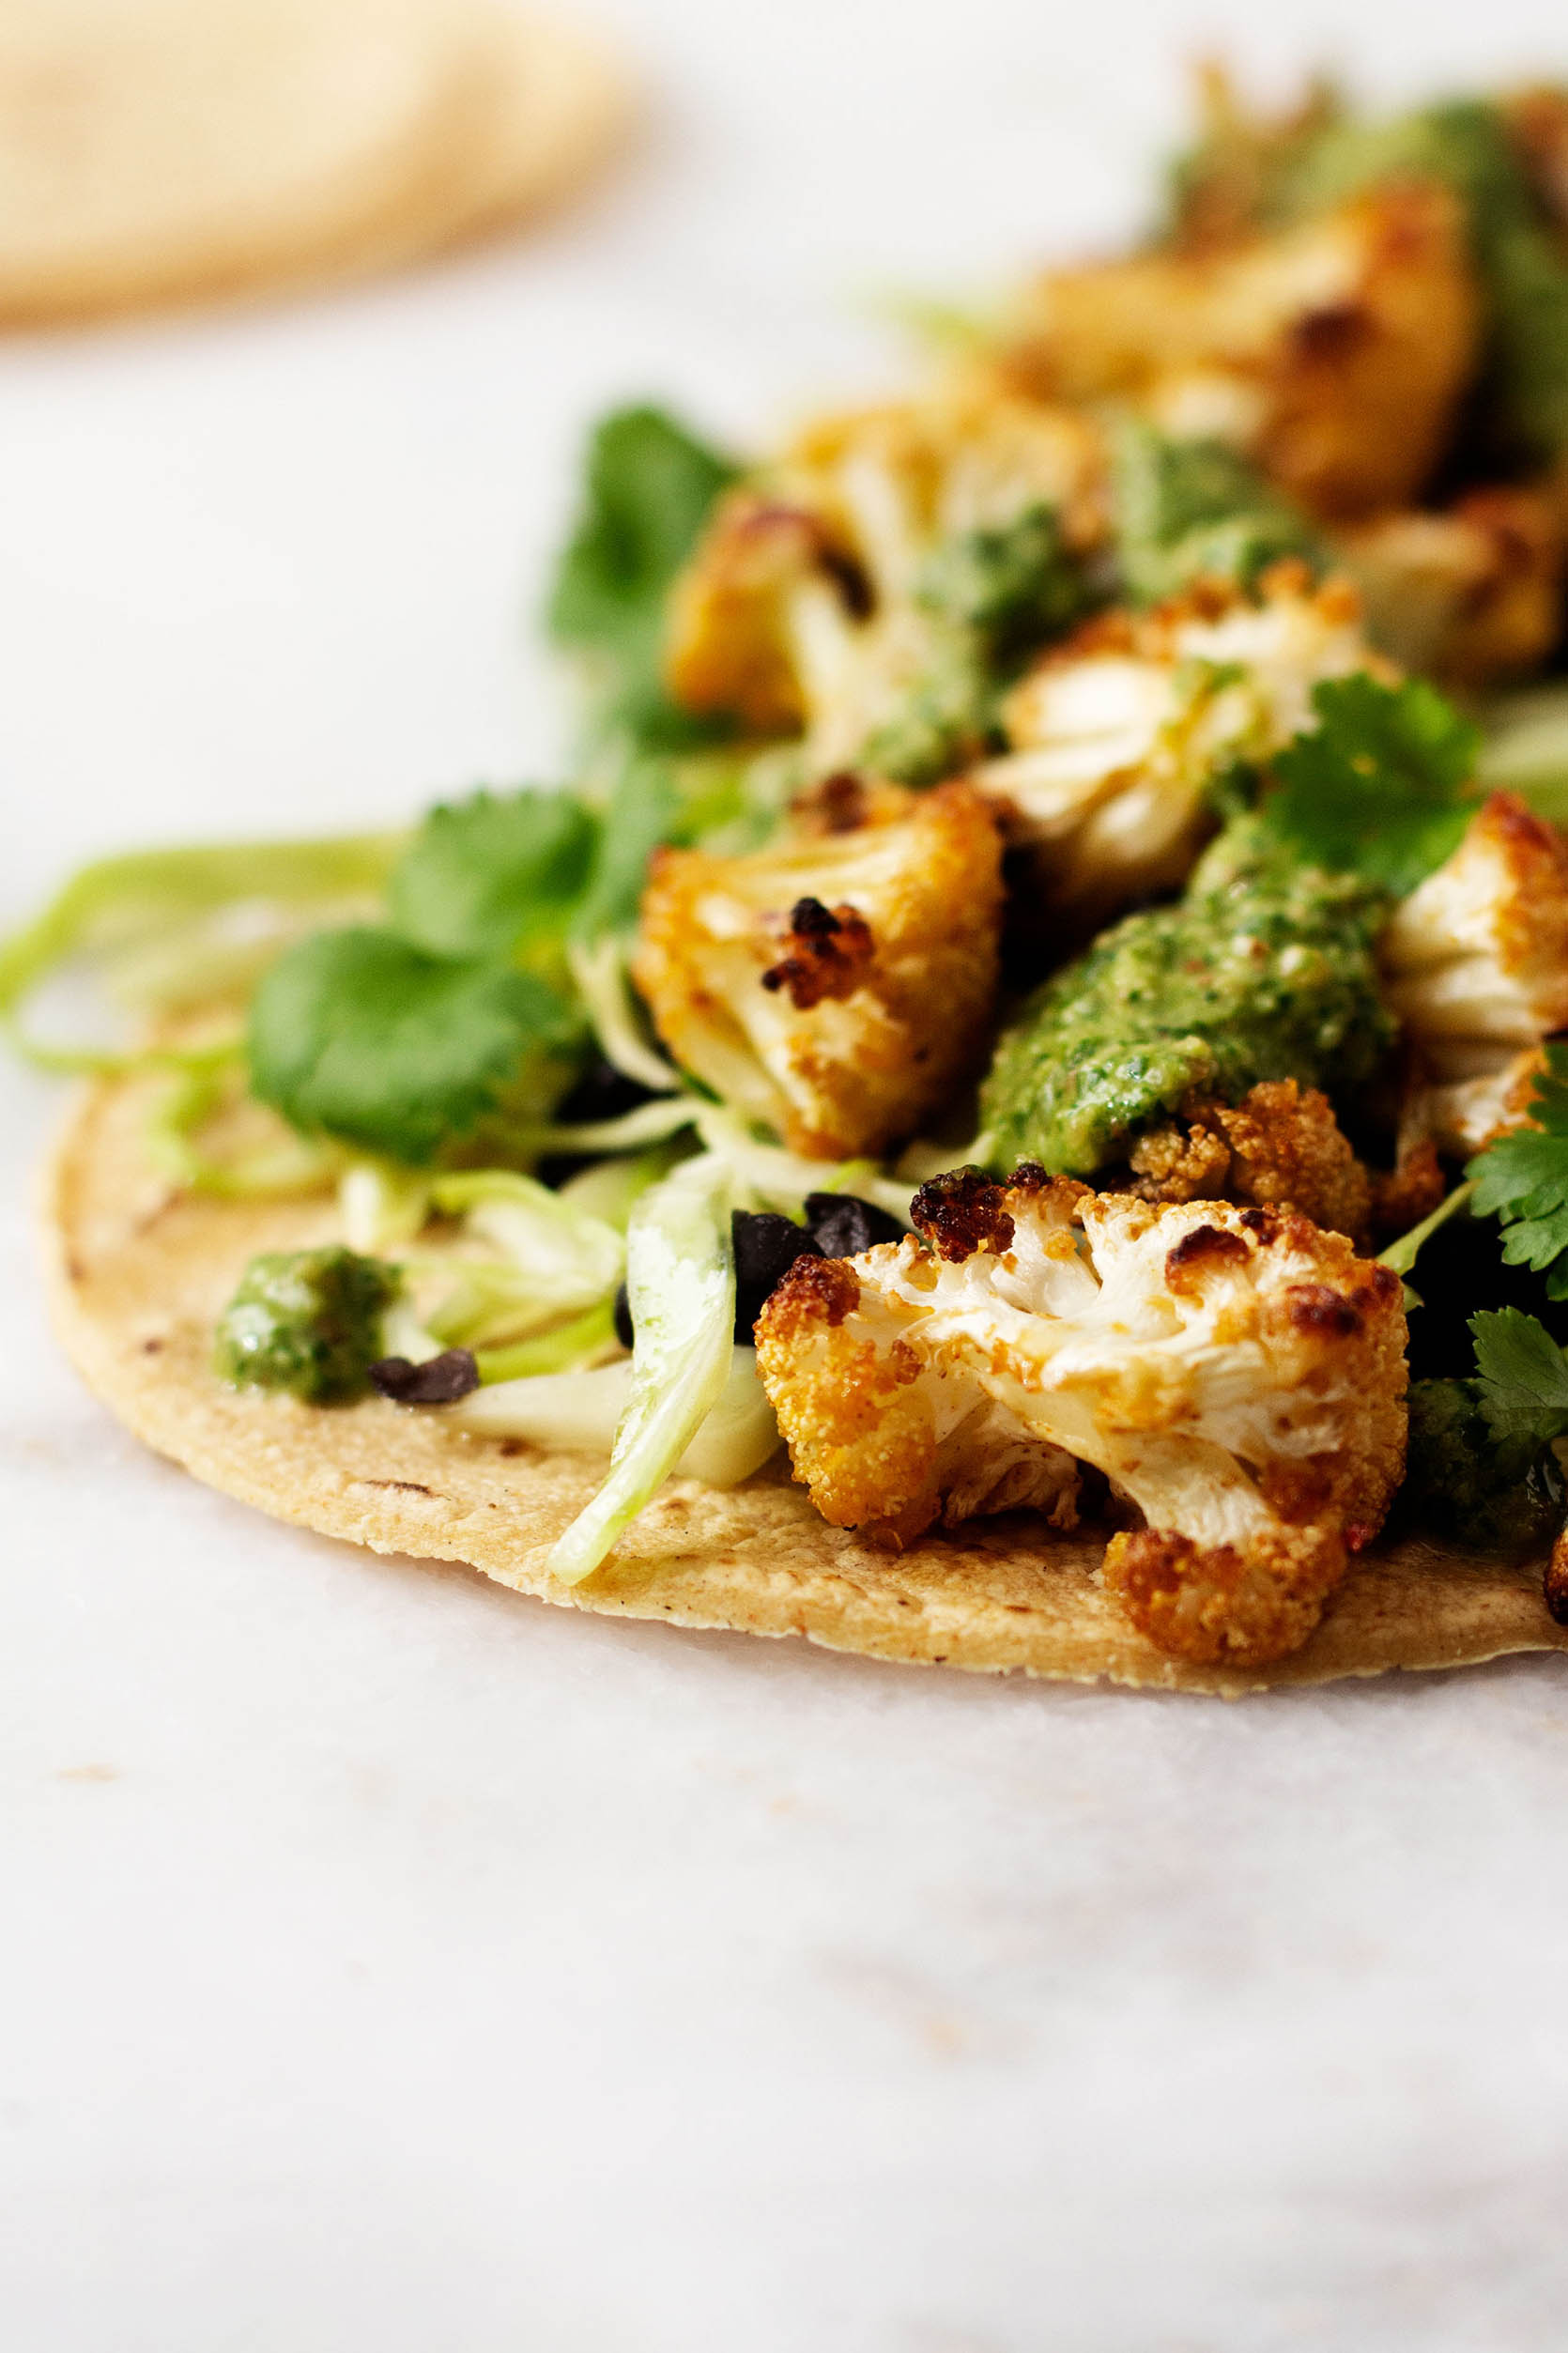 Crispy Cauliflower Chimichurri Tacos | The Full Helping